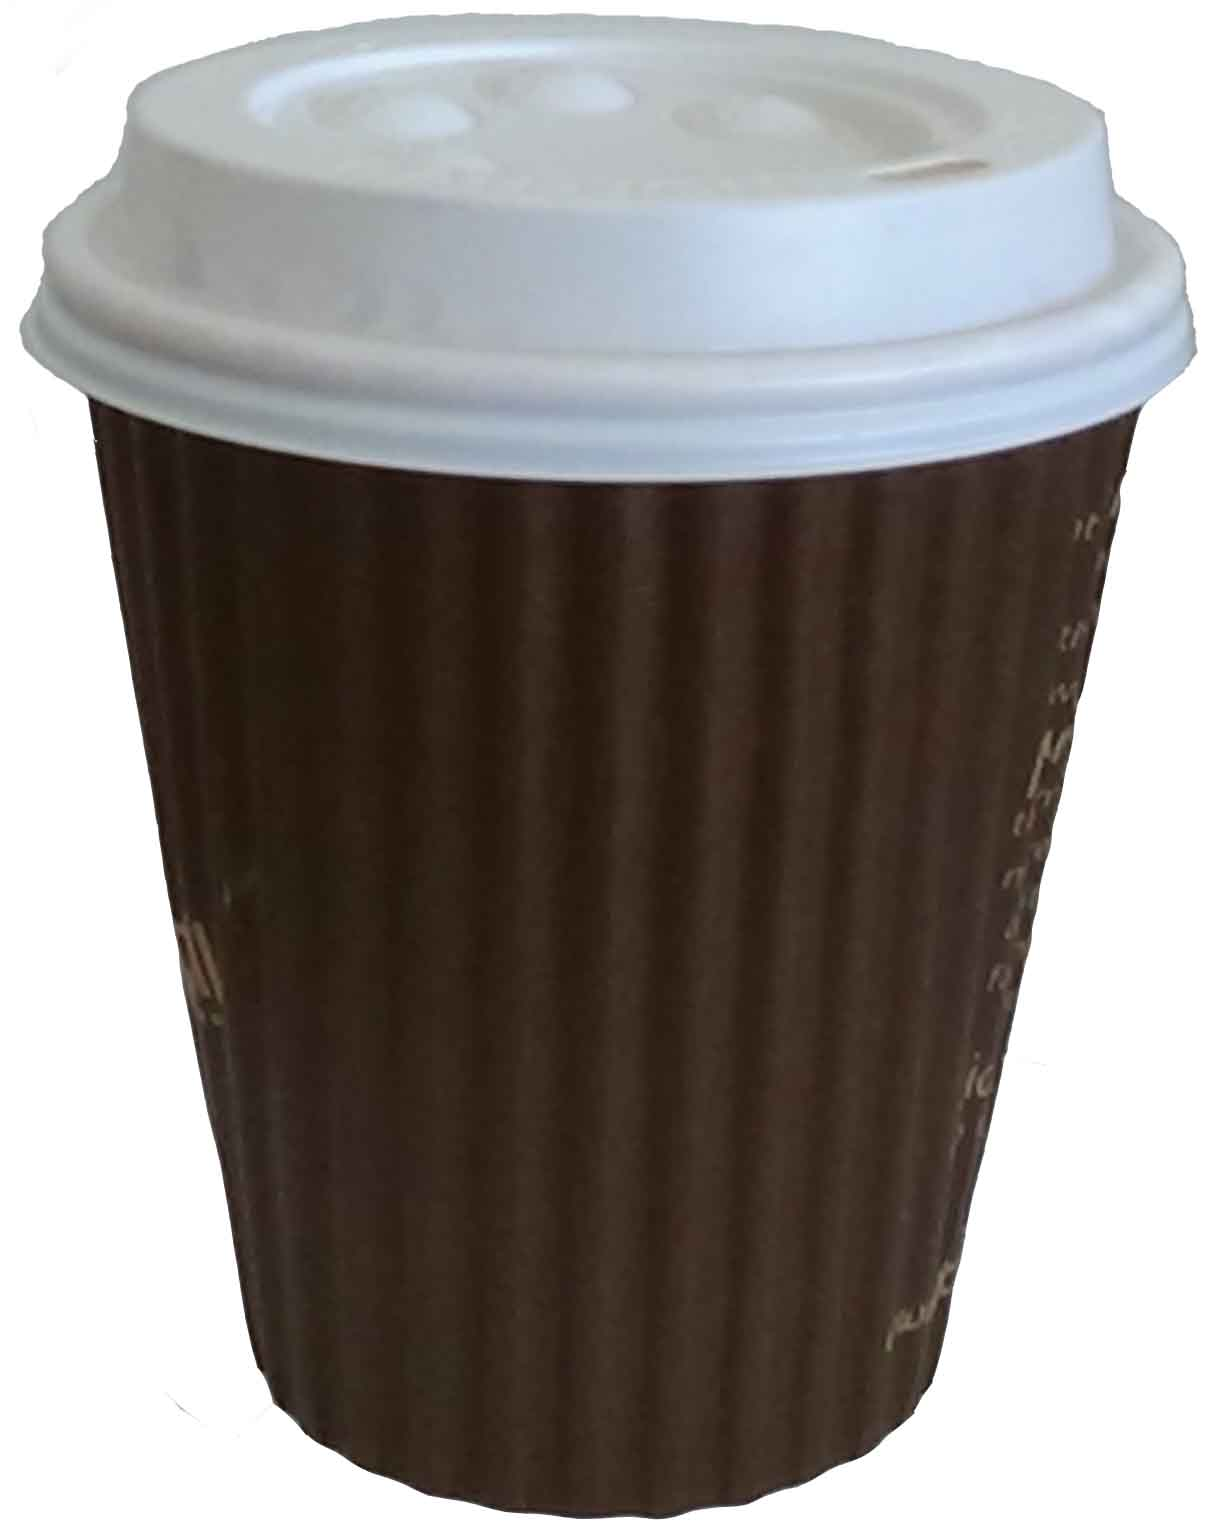 PT coffee cup1 copy